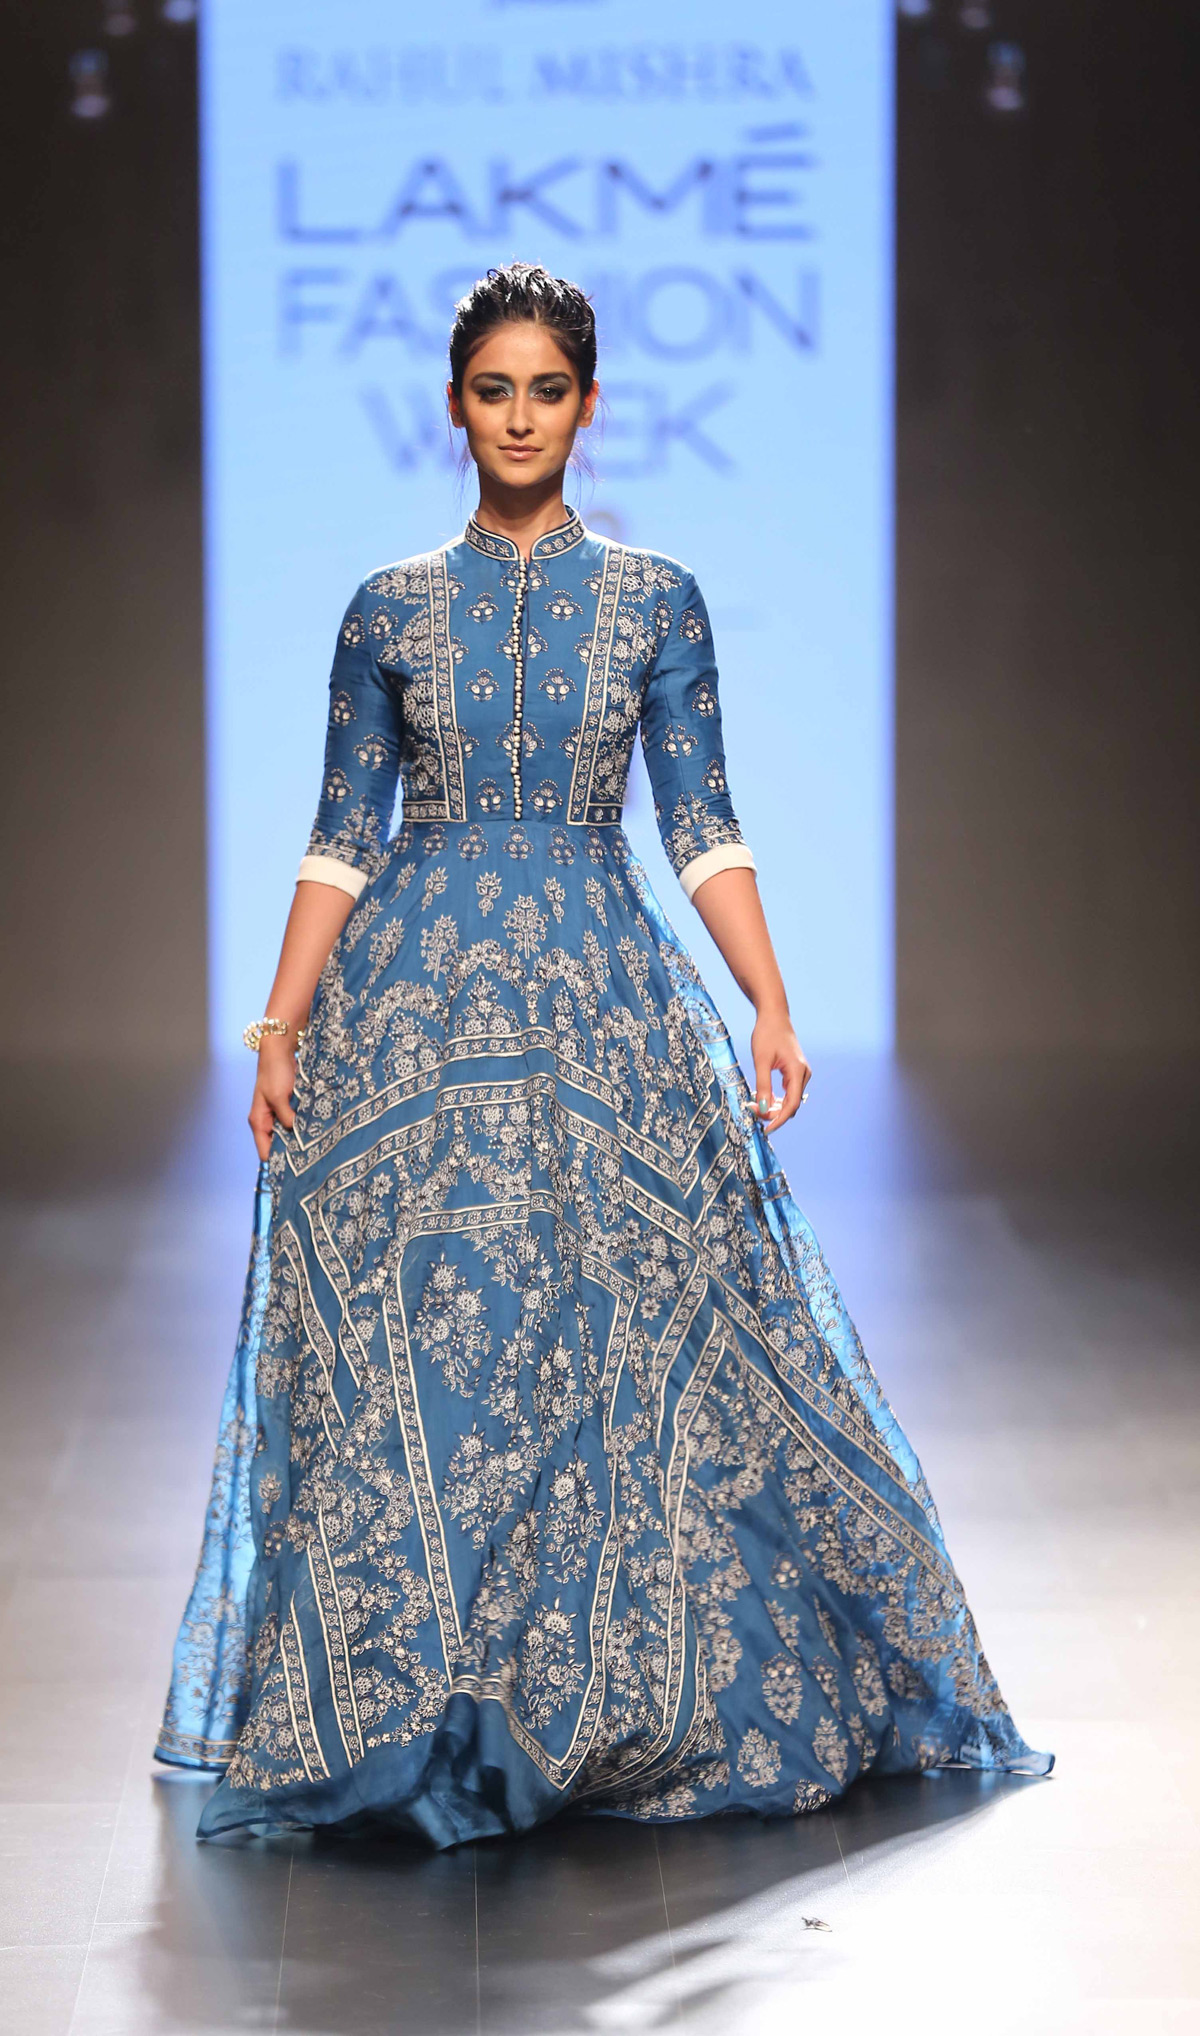 Lakmé Fashion Week,2016: Redefine The Future Of Fashion